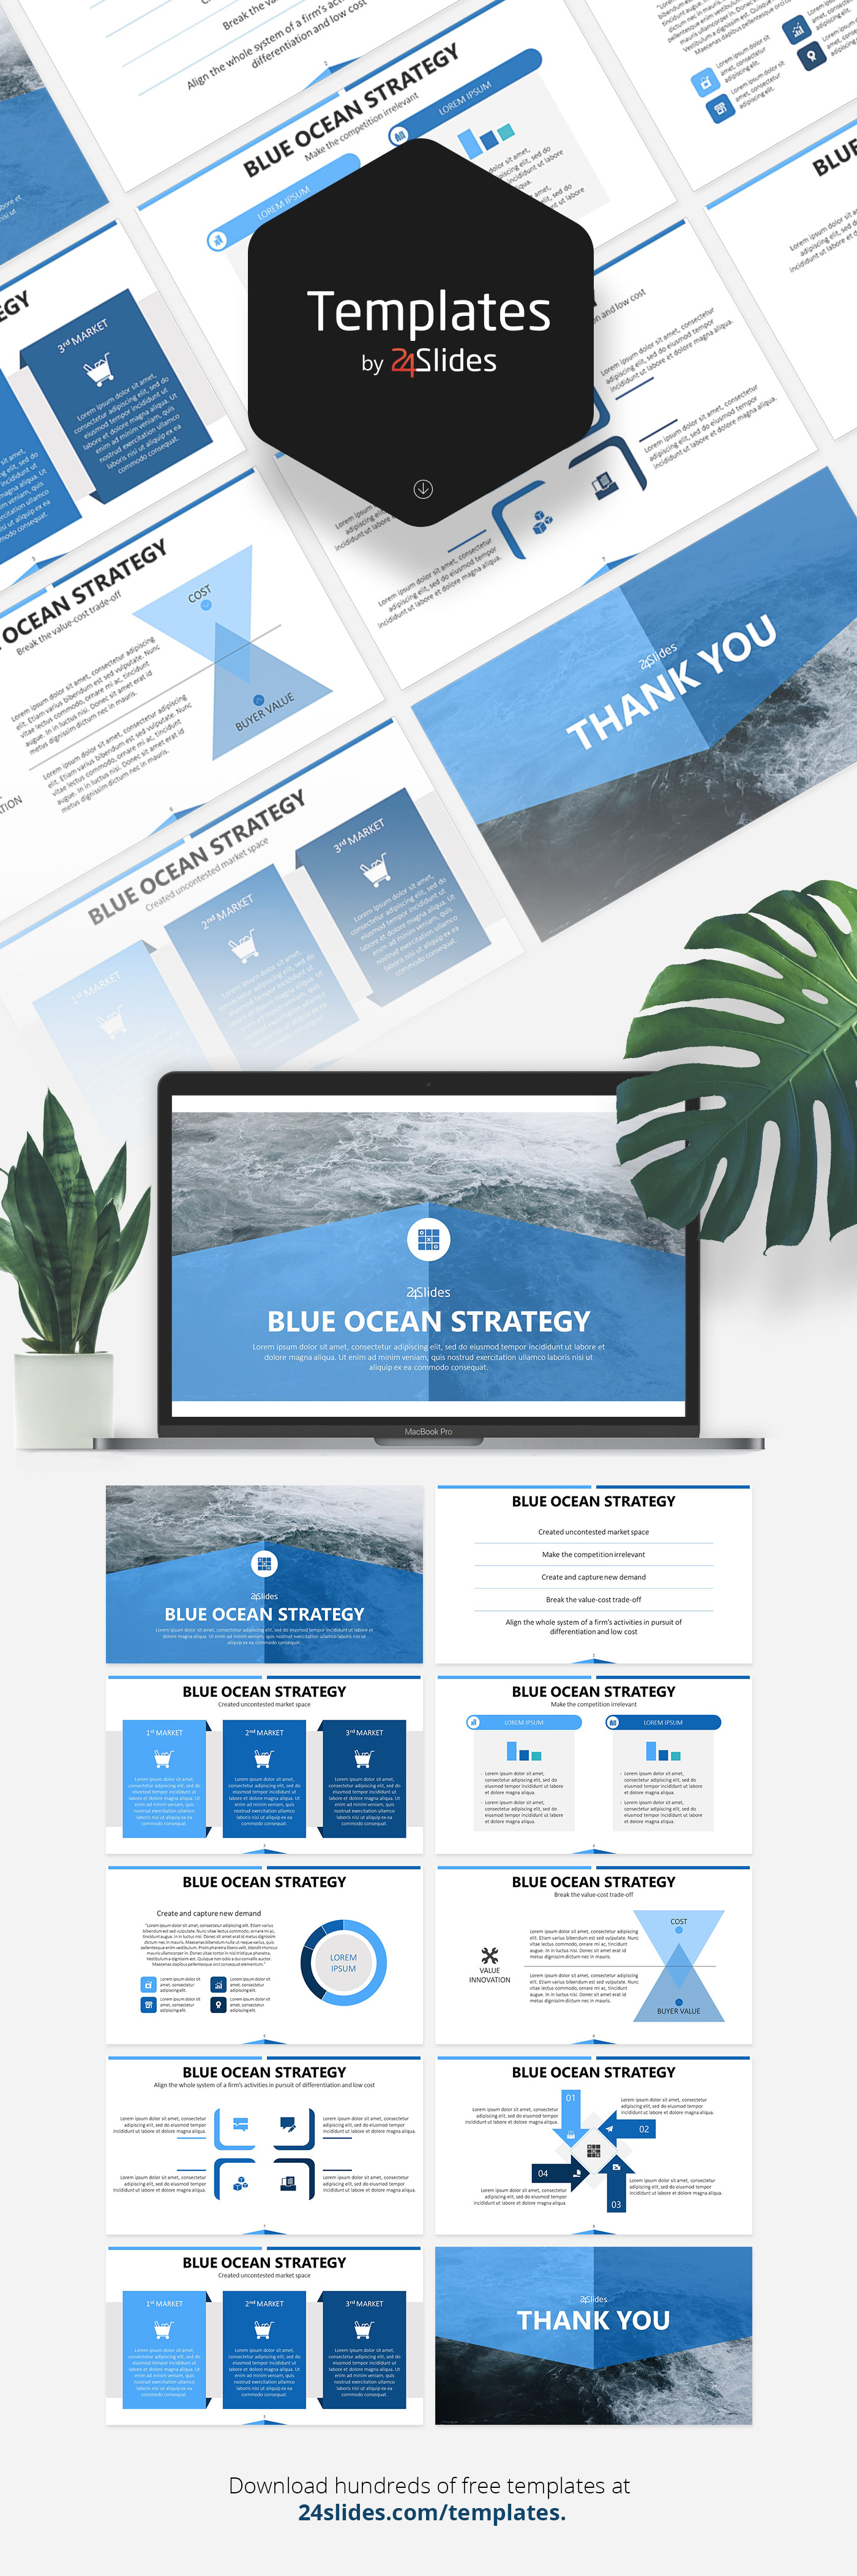 Powerpoint Business presentation Presentation templates download Free Template